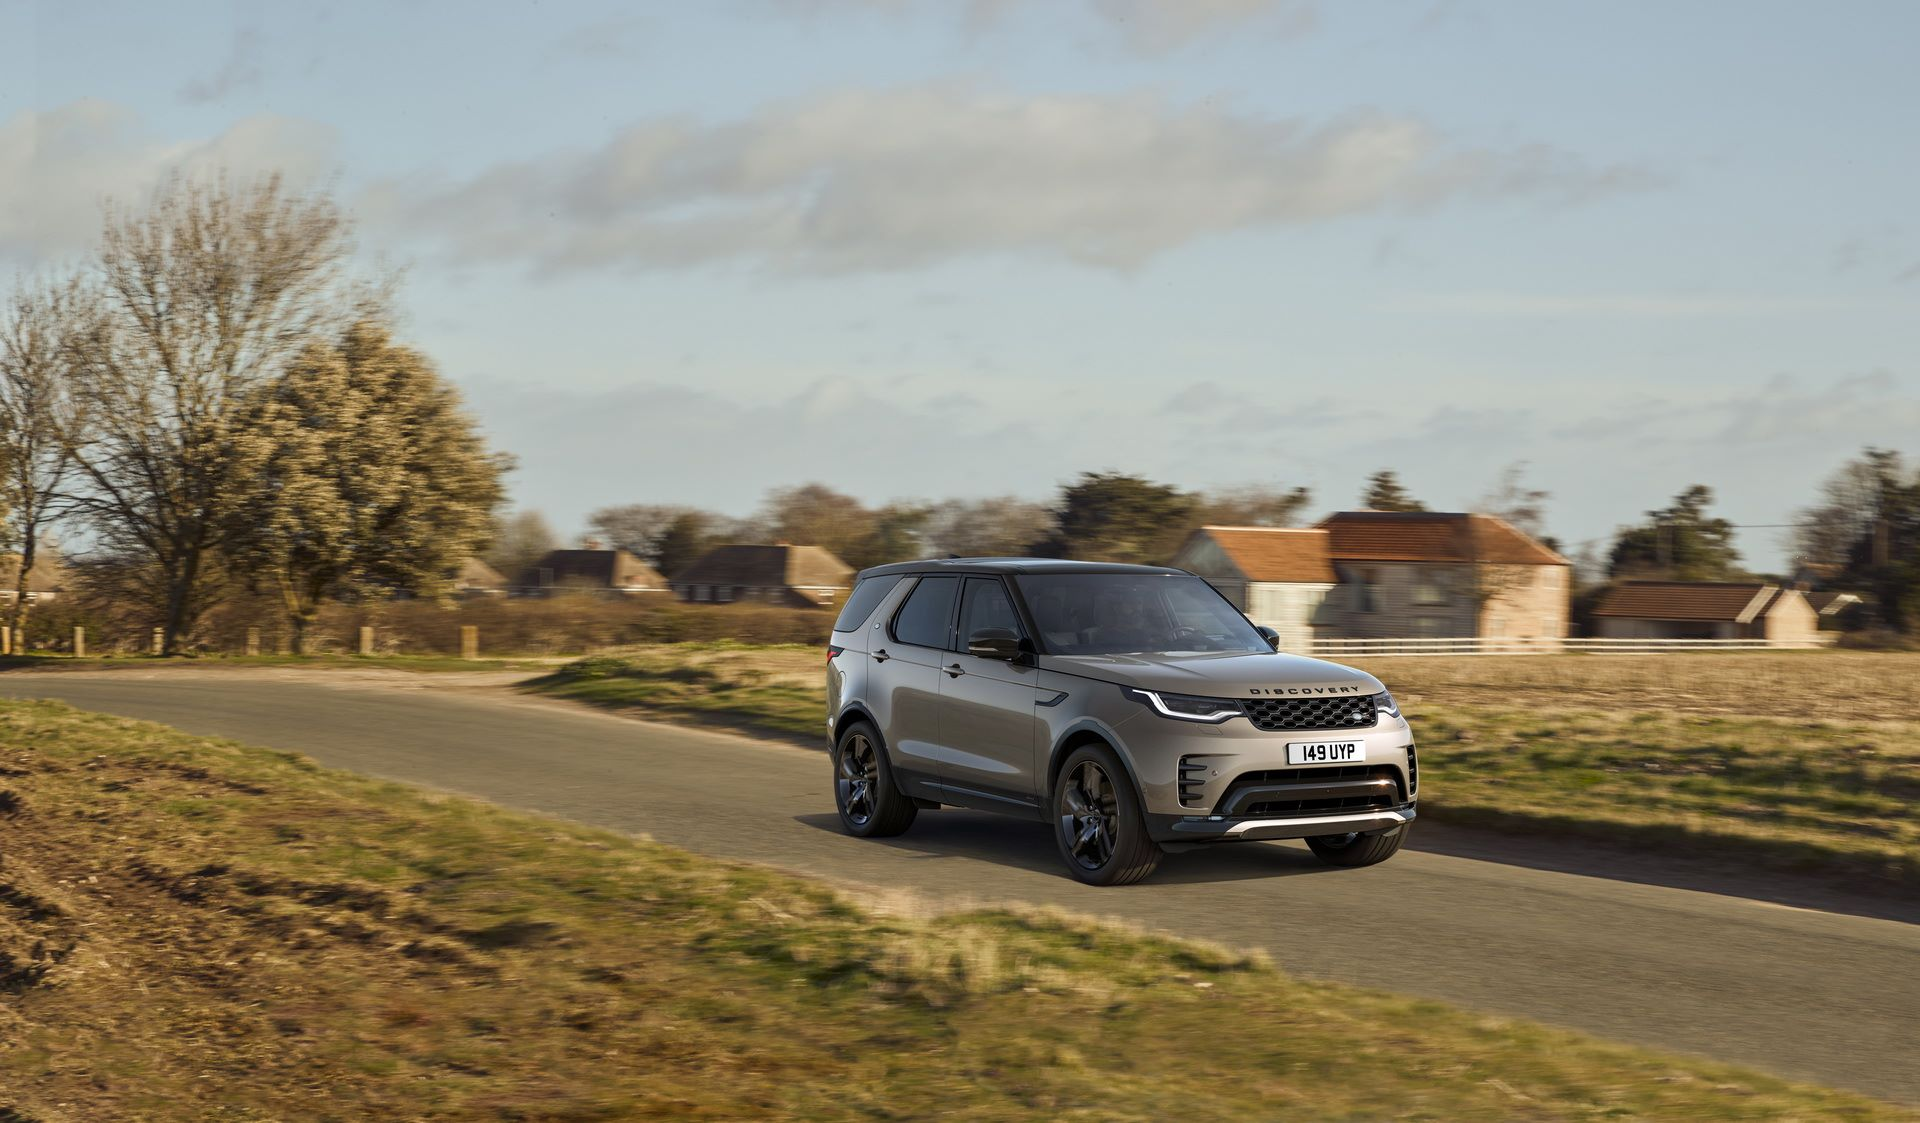 2021-Land-Rover-Discovery-22-1